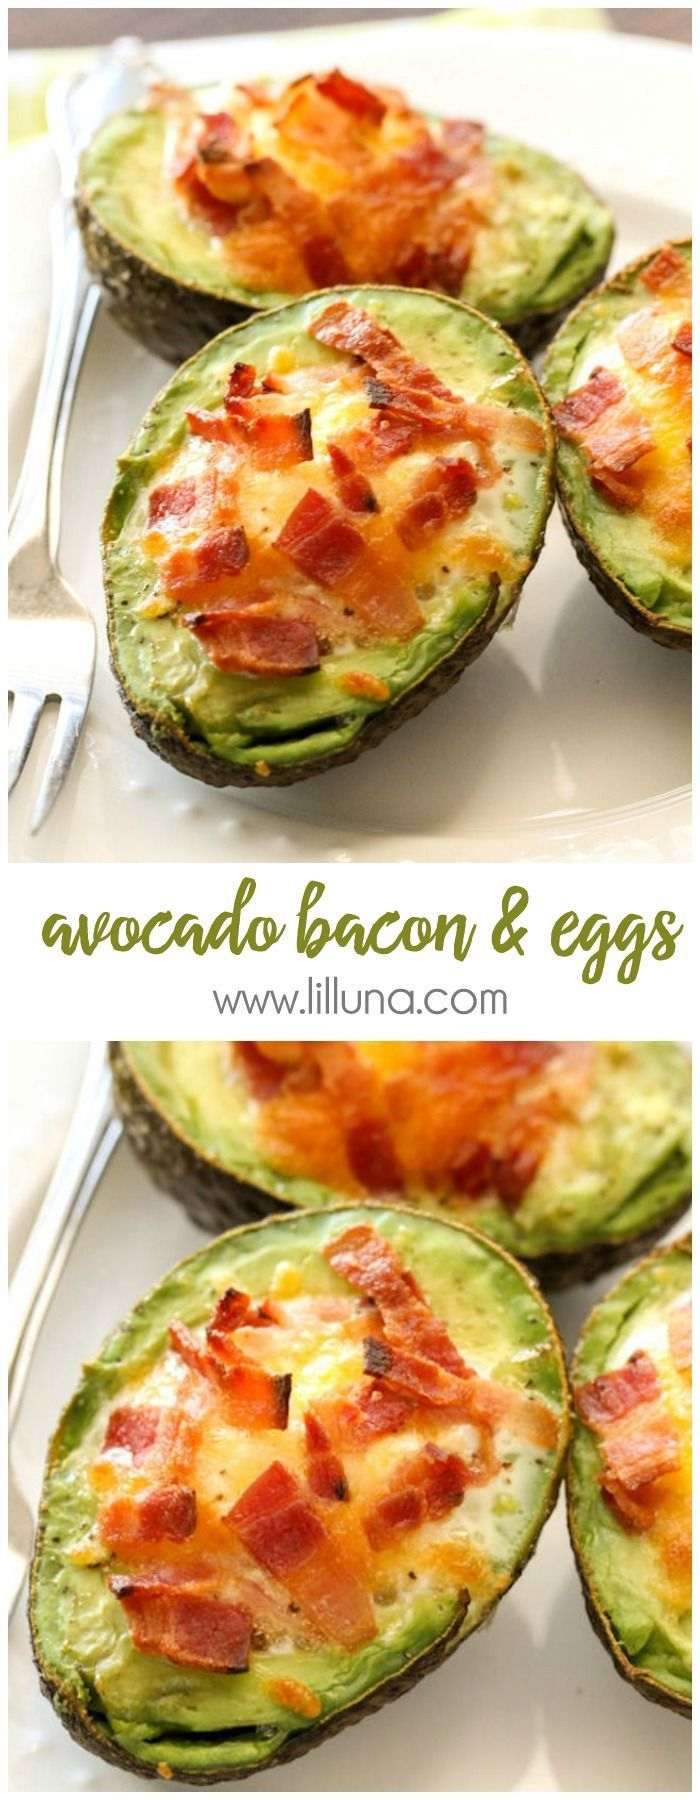 We love these Avocado Bacon and Eggs - they're so easy too!